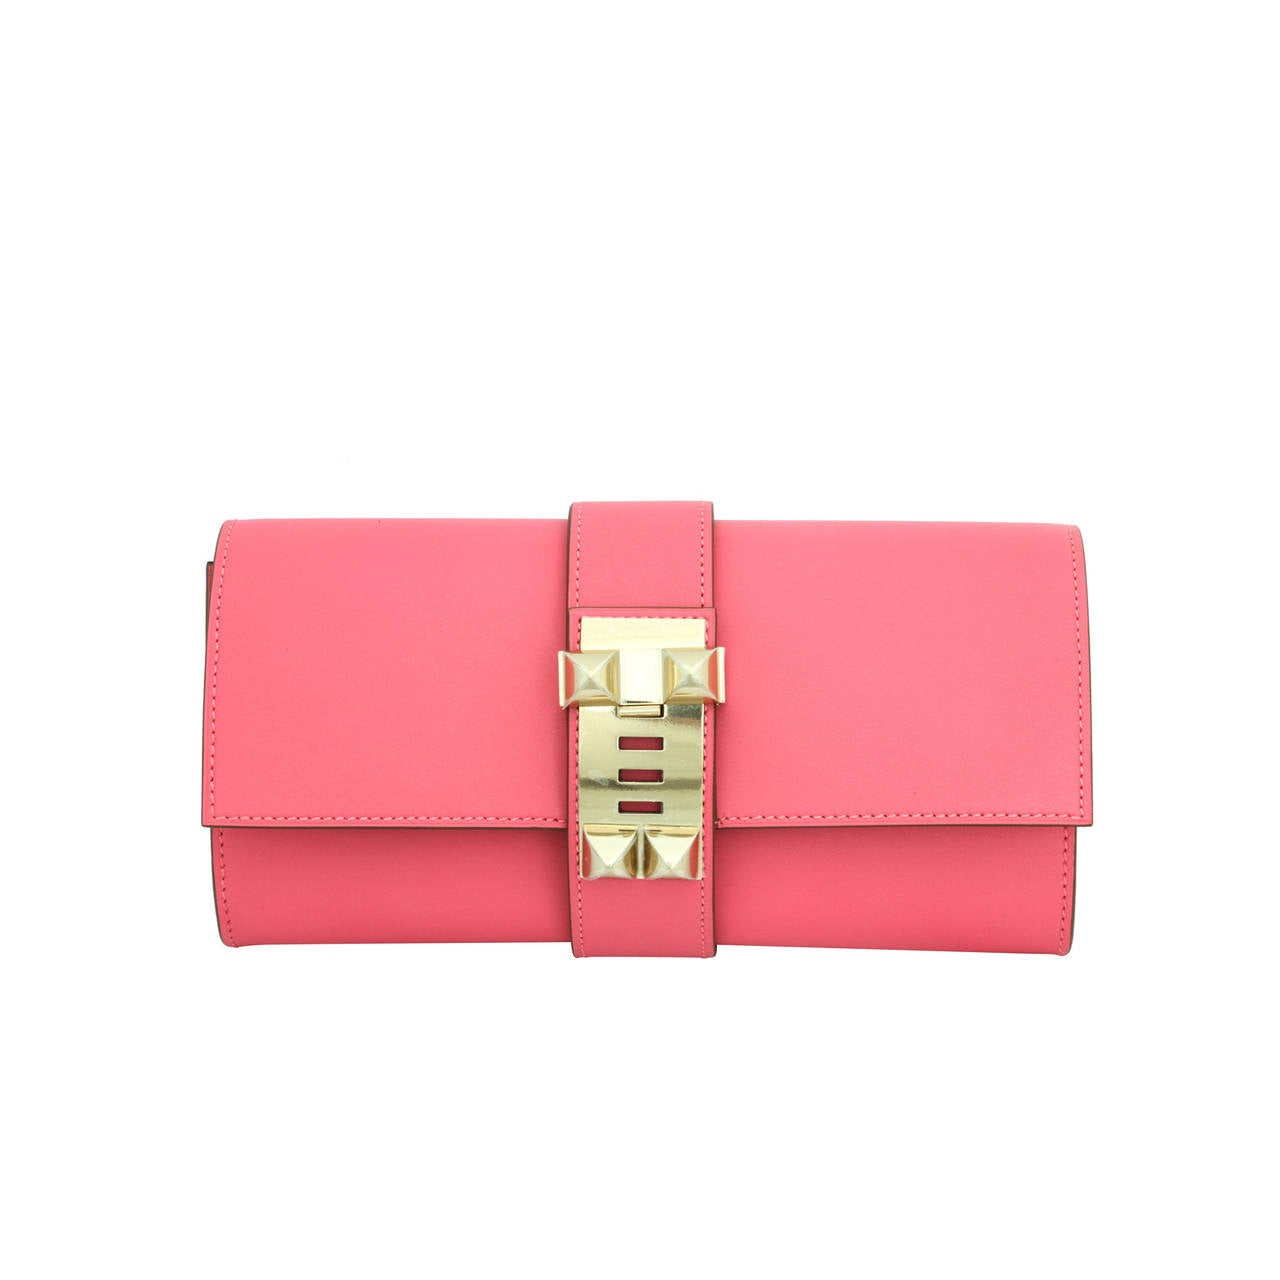 Hermes Very Rare Medor Clutch Bag Rose Lipstick Pink 1